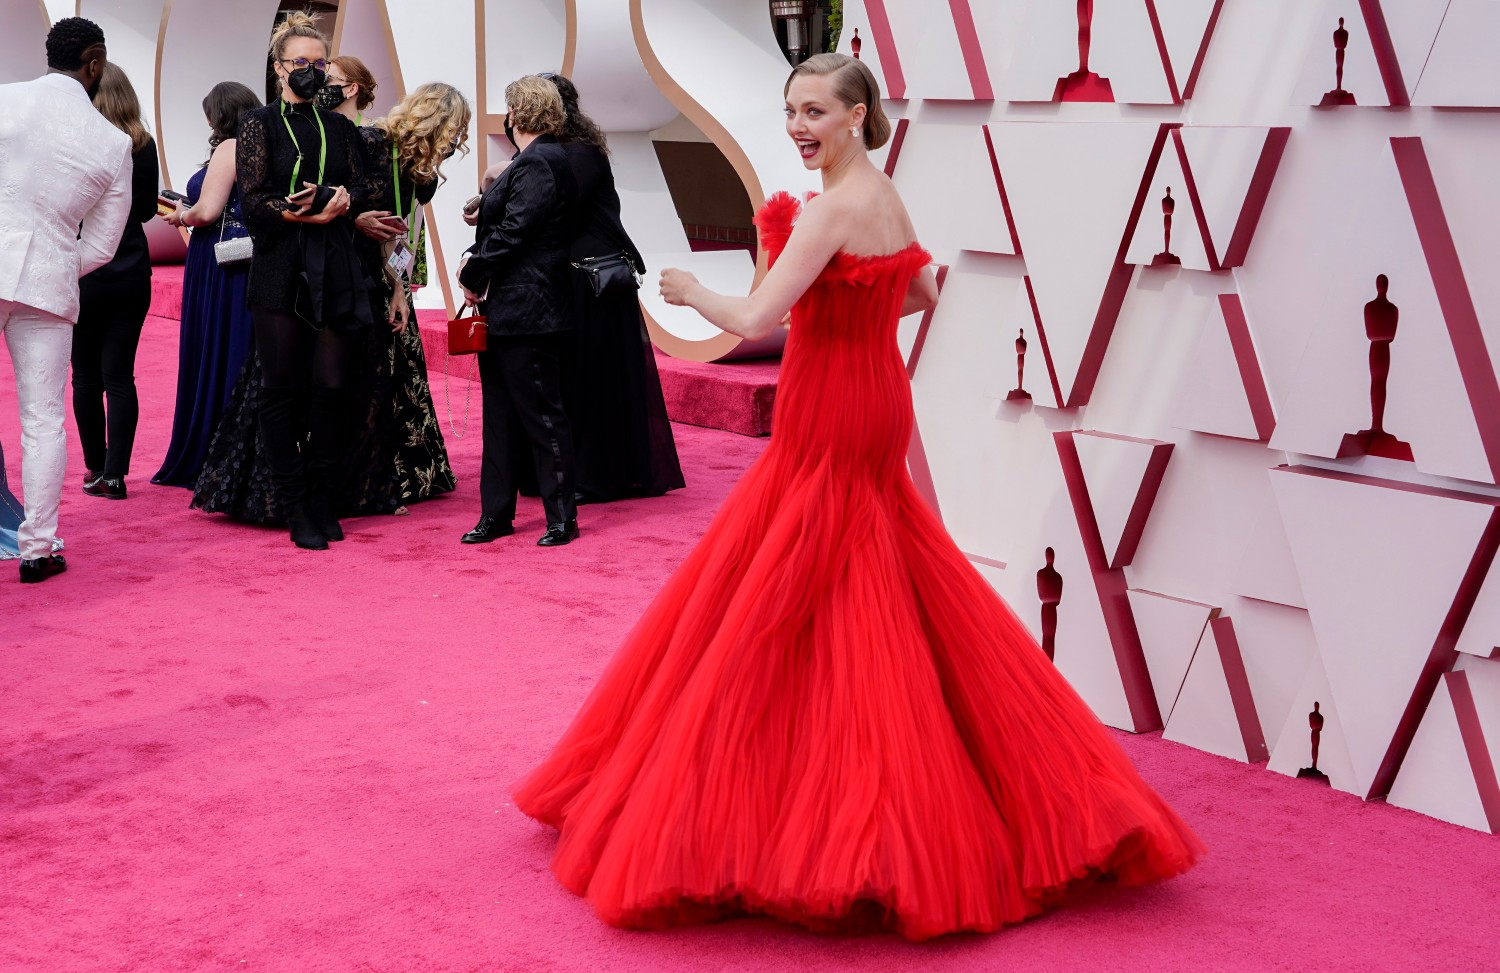 seyfried GettyImages 1314418958 1